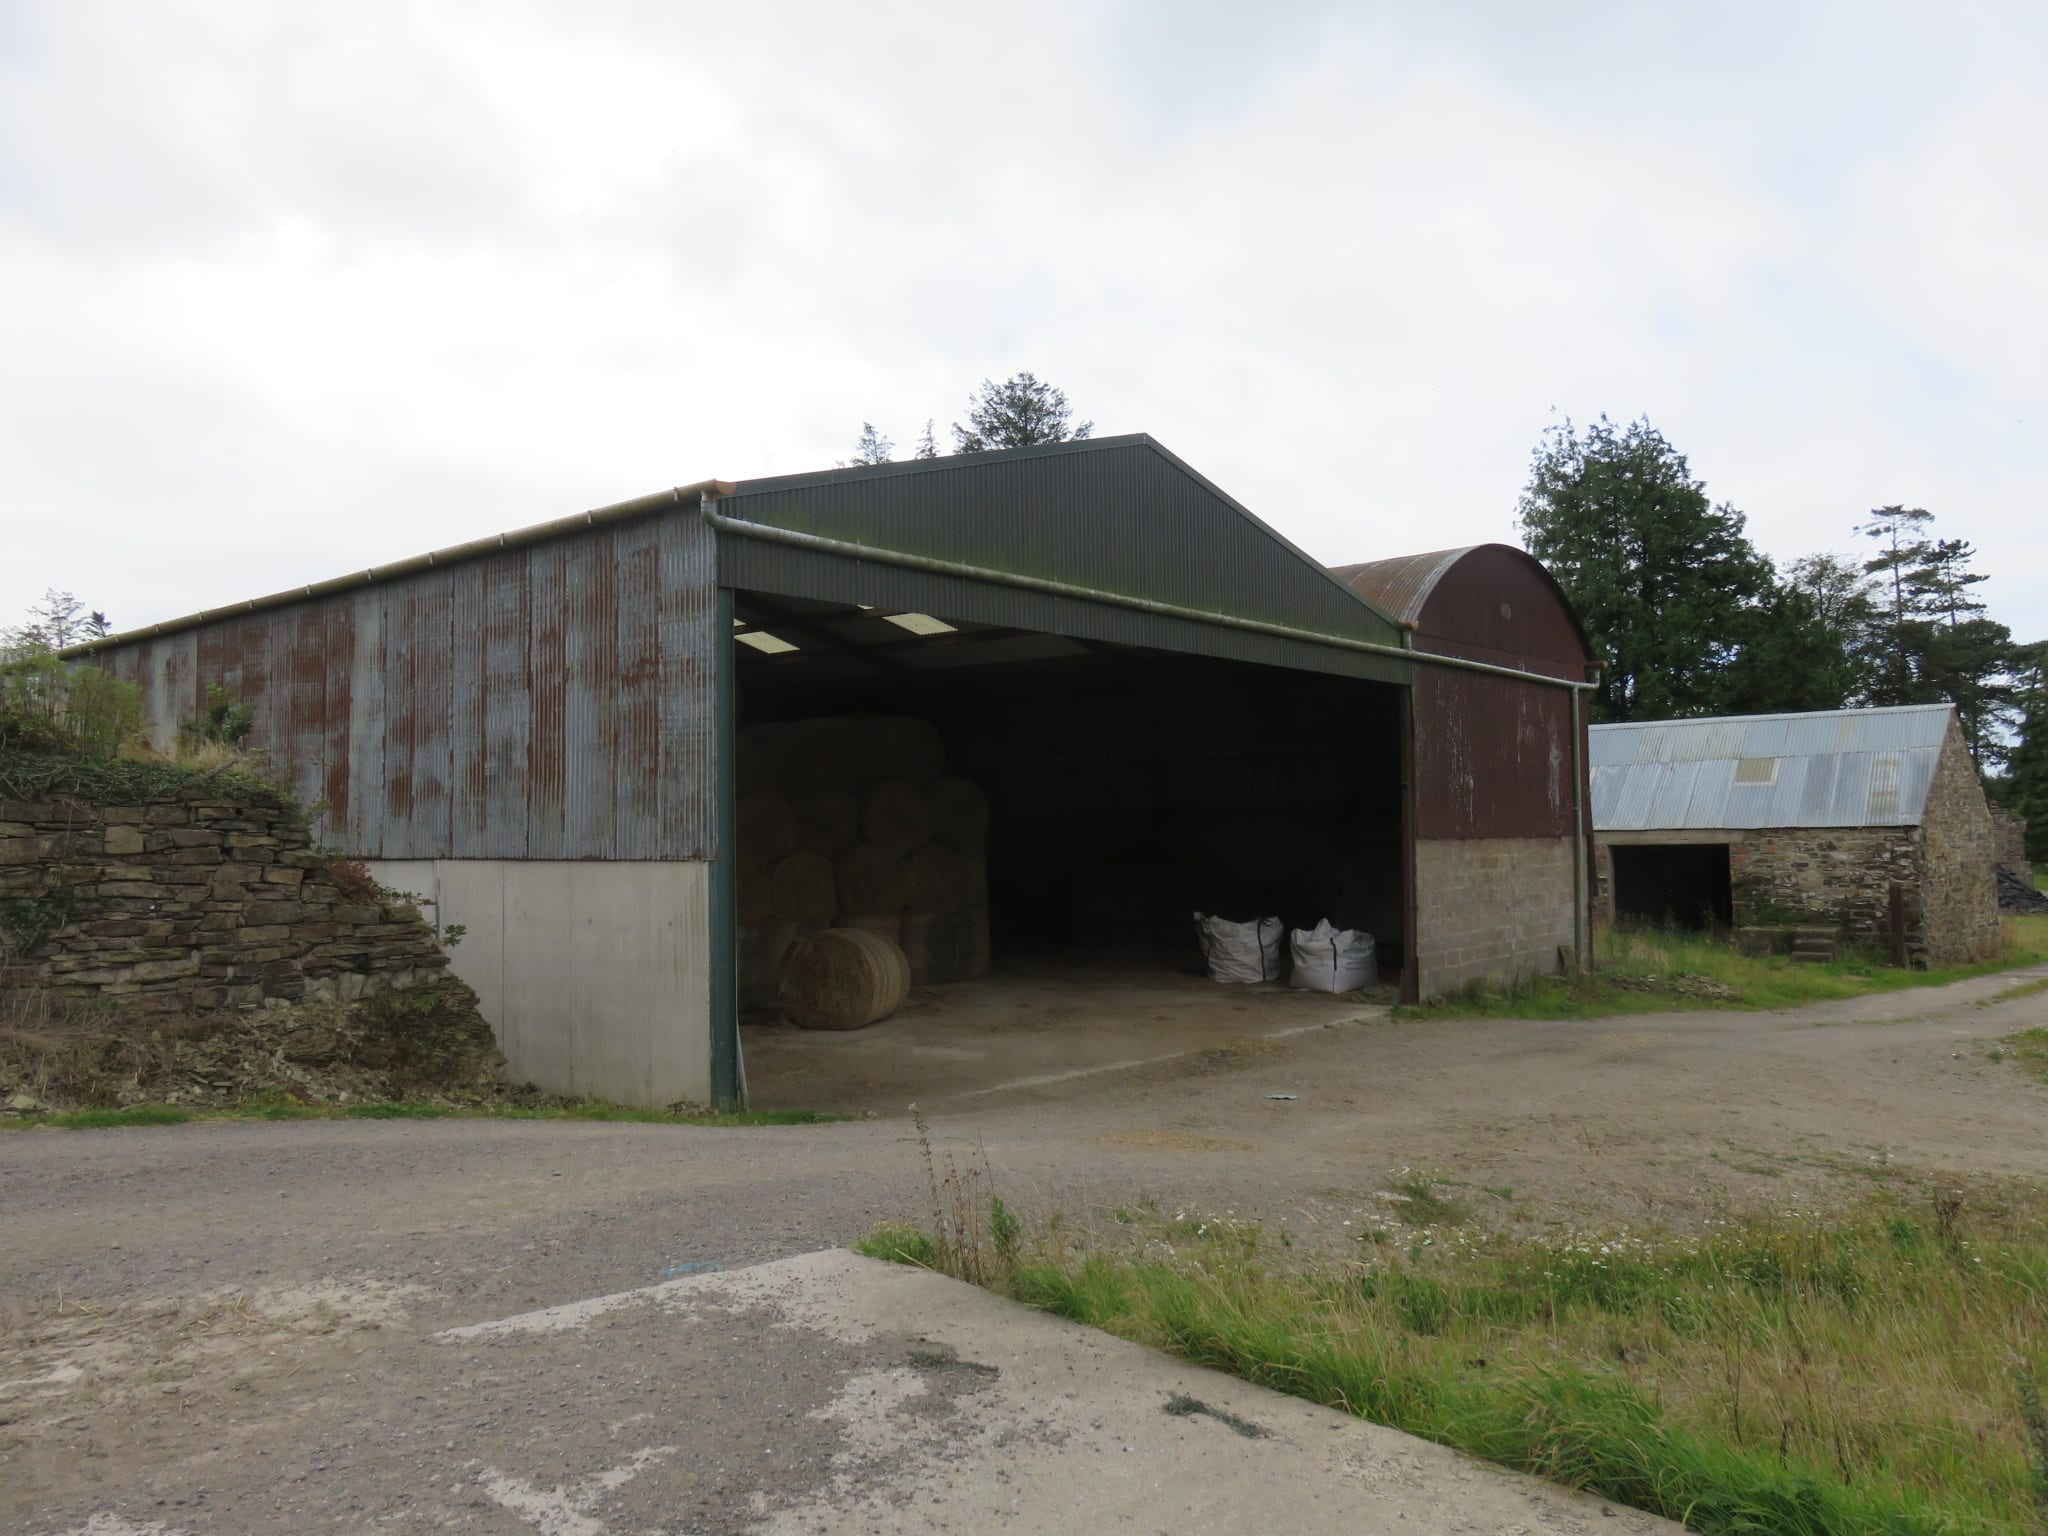 Shed c IMG_7347